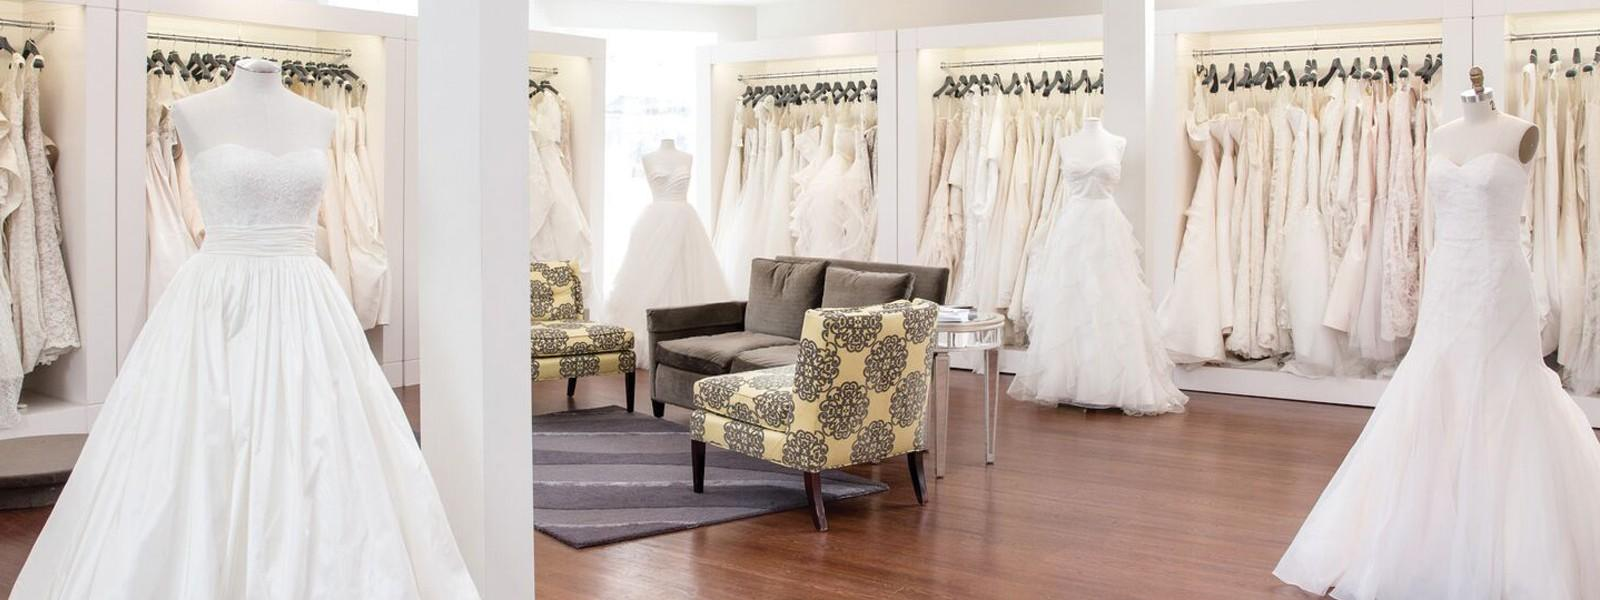 Best Places To Find A Wedding Dress For Your Philadelphia Wedding Elizabeth Johns Philadelphia Dress Shop Philly In Love Philadelphia Weddings